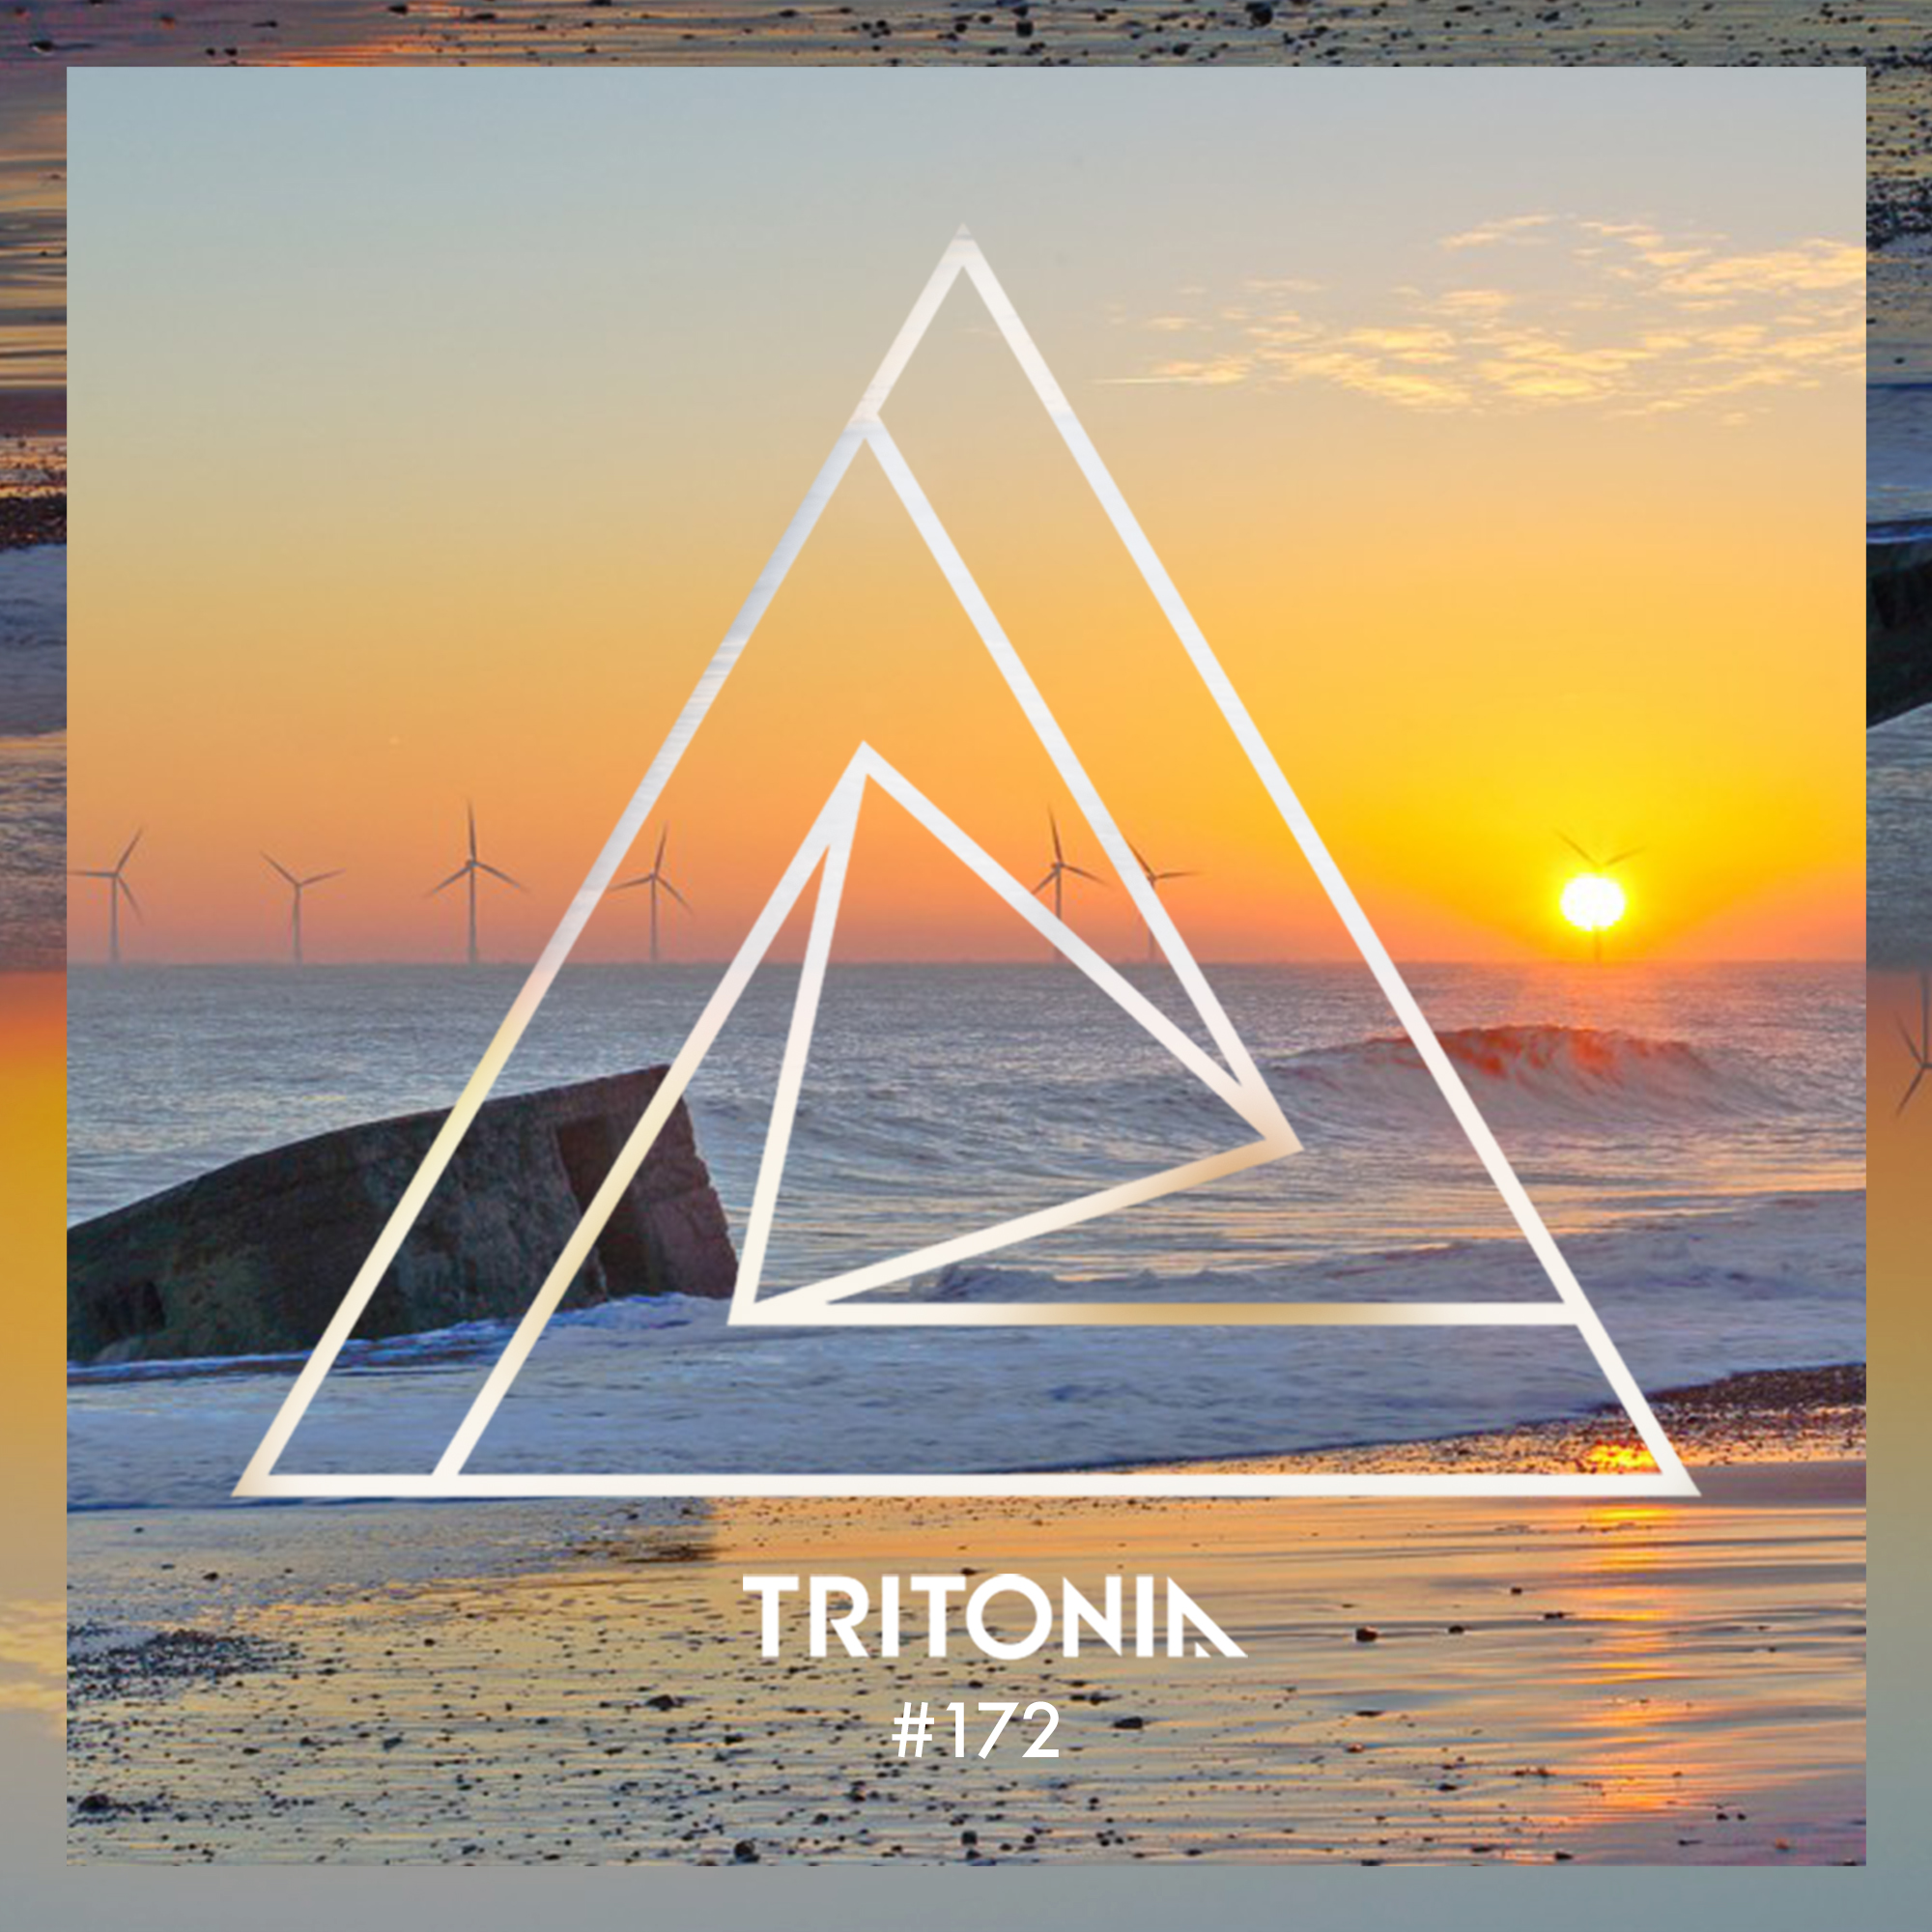 Anevo Don T Shoot Me Down best episodes of tritonia | podchaser